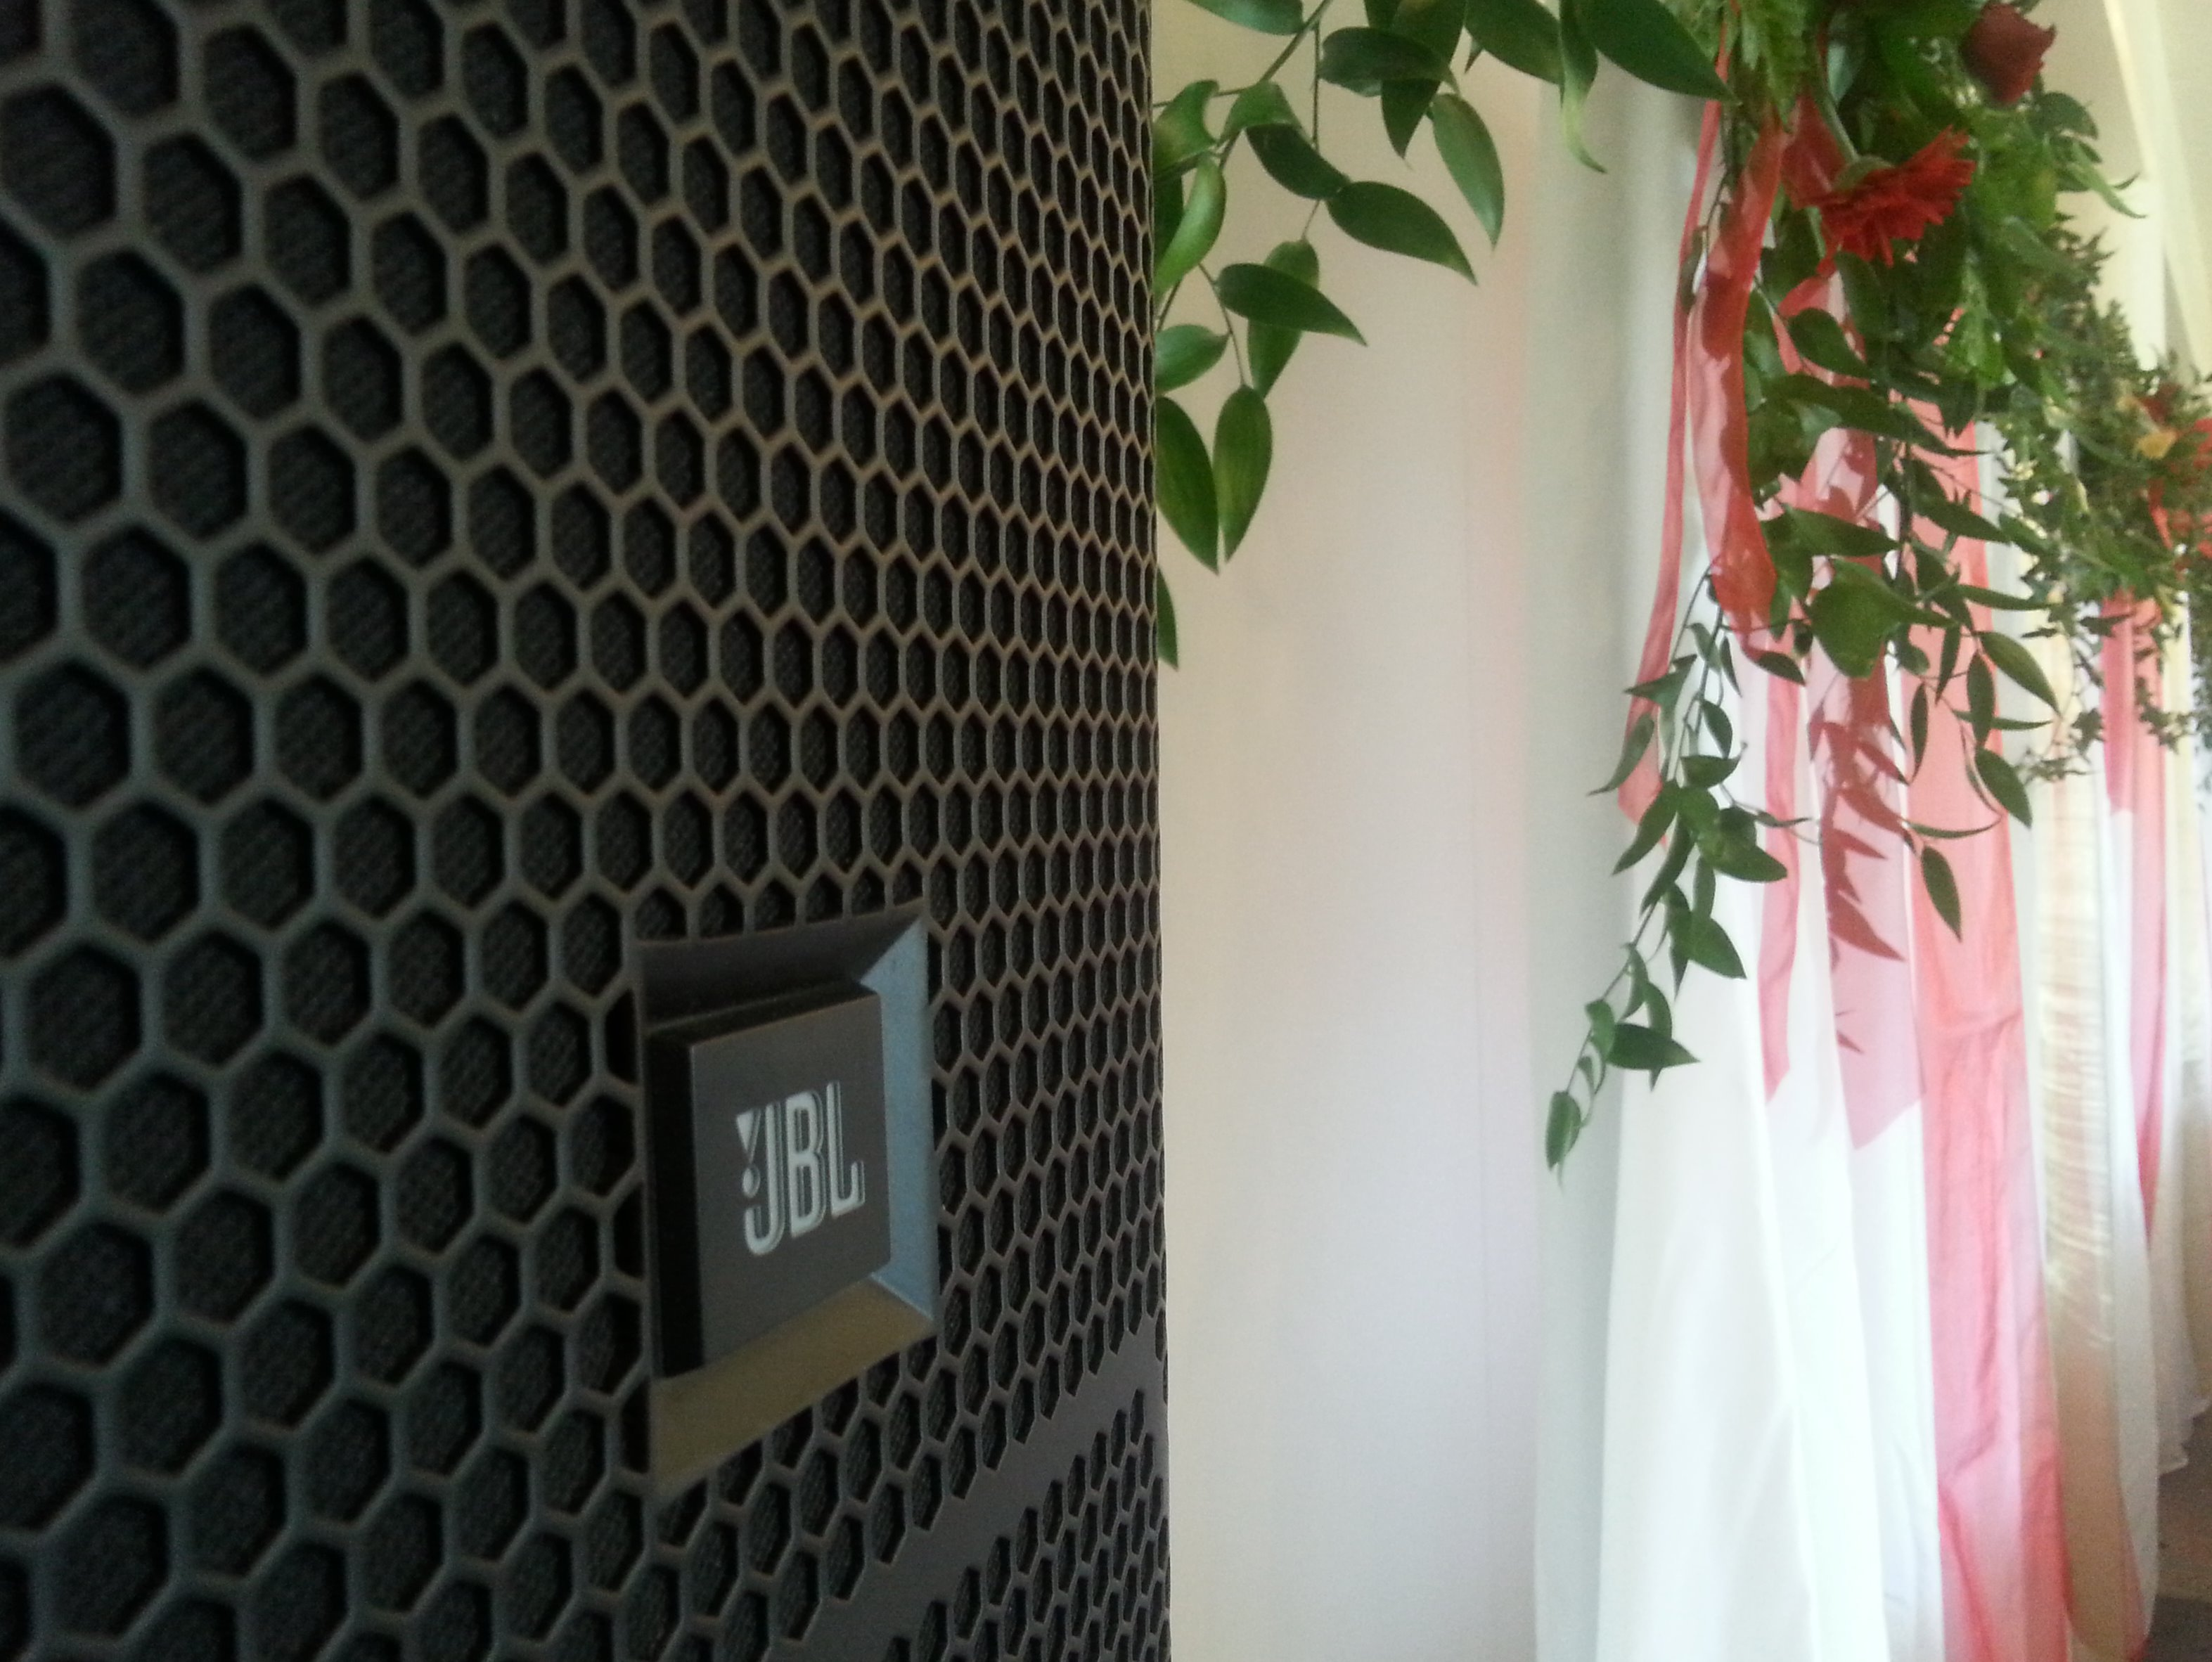 Quality sound equipment - JBL, RCF, Mackie..........